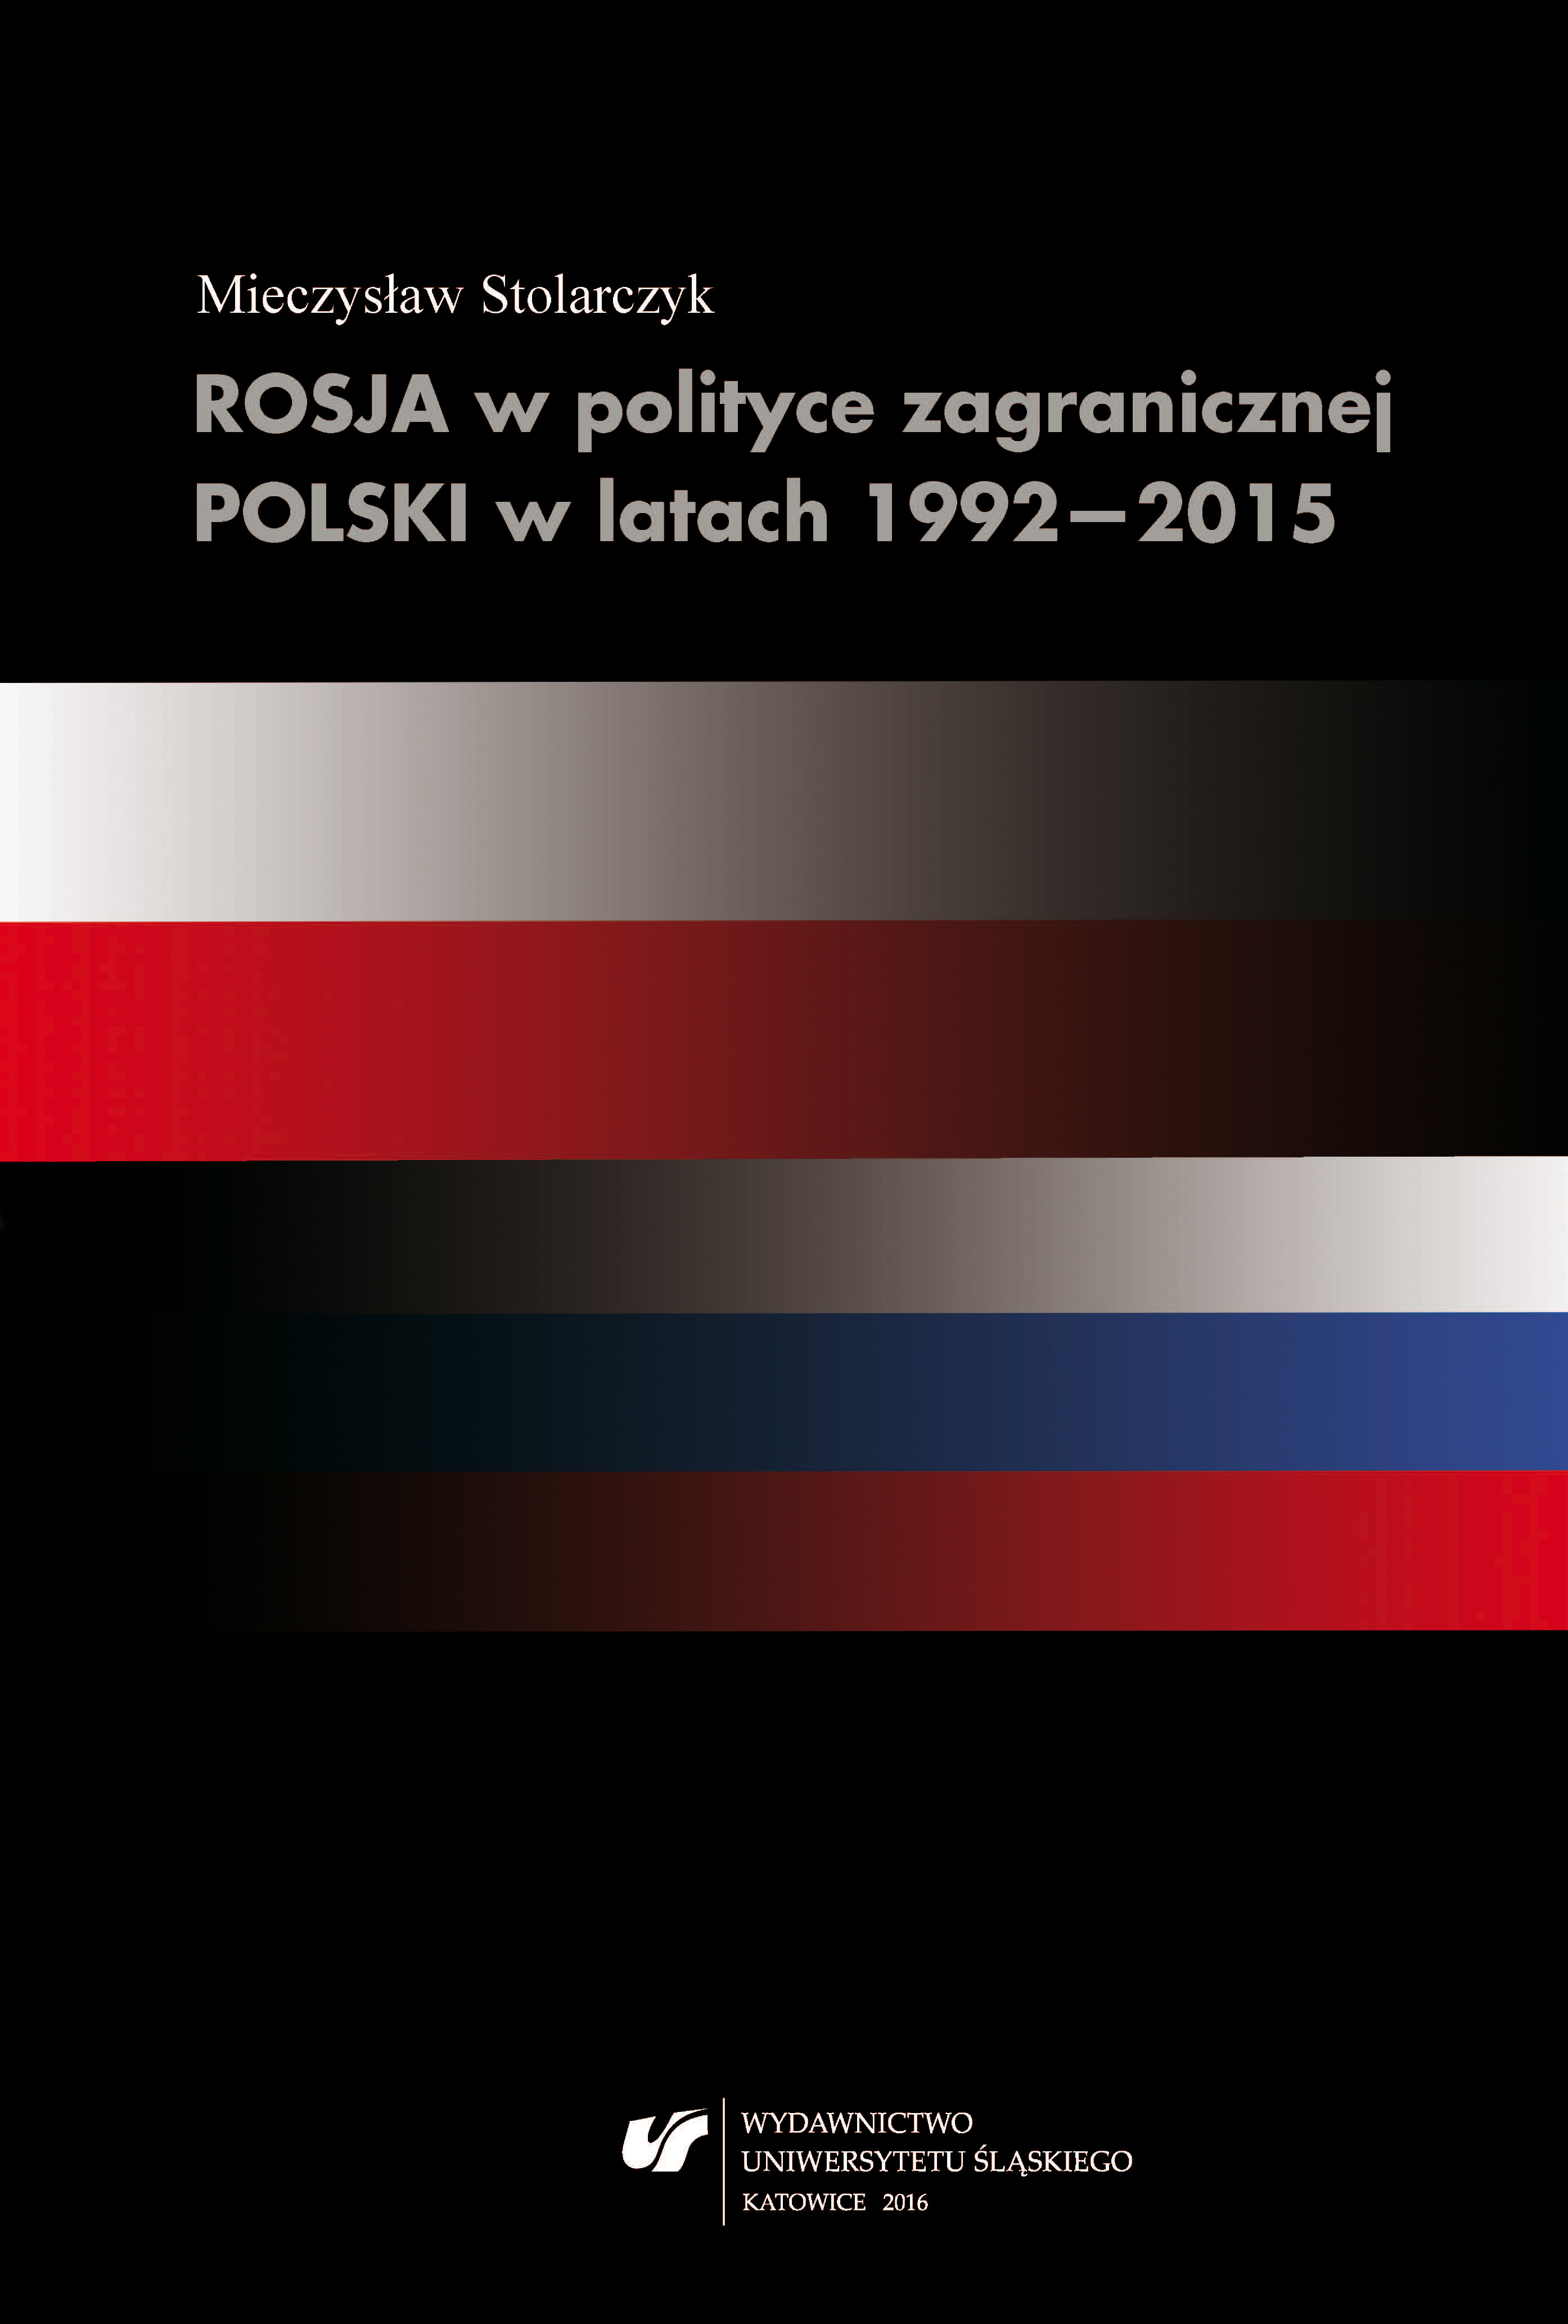 Russia in the foreign policy of Poland between 1992 and 2015 Cover Image